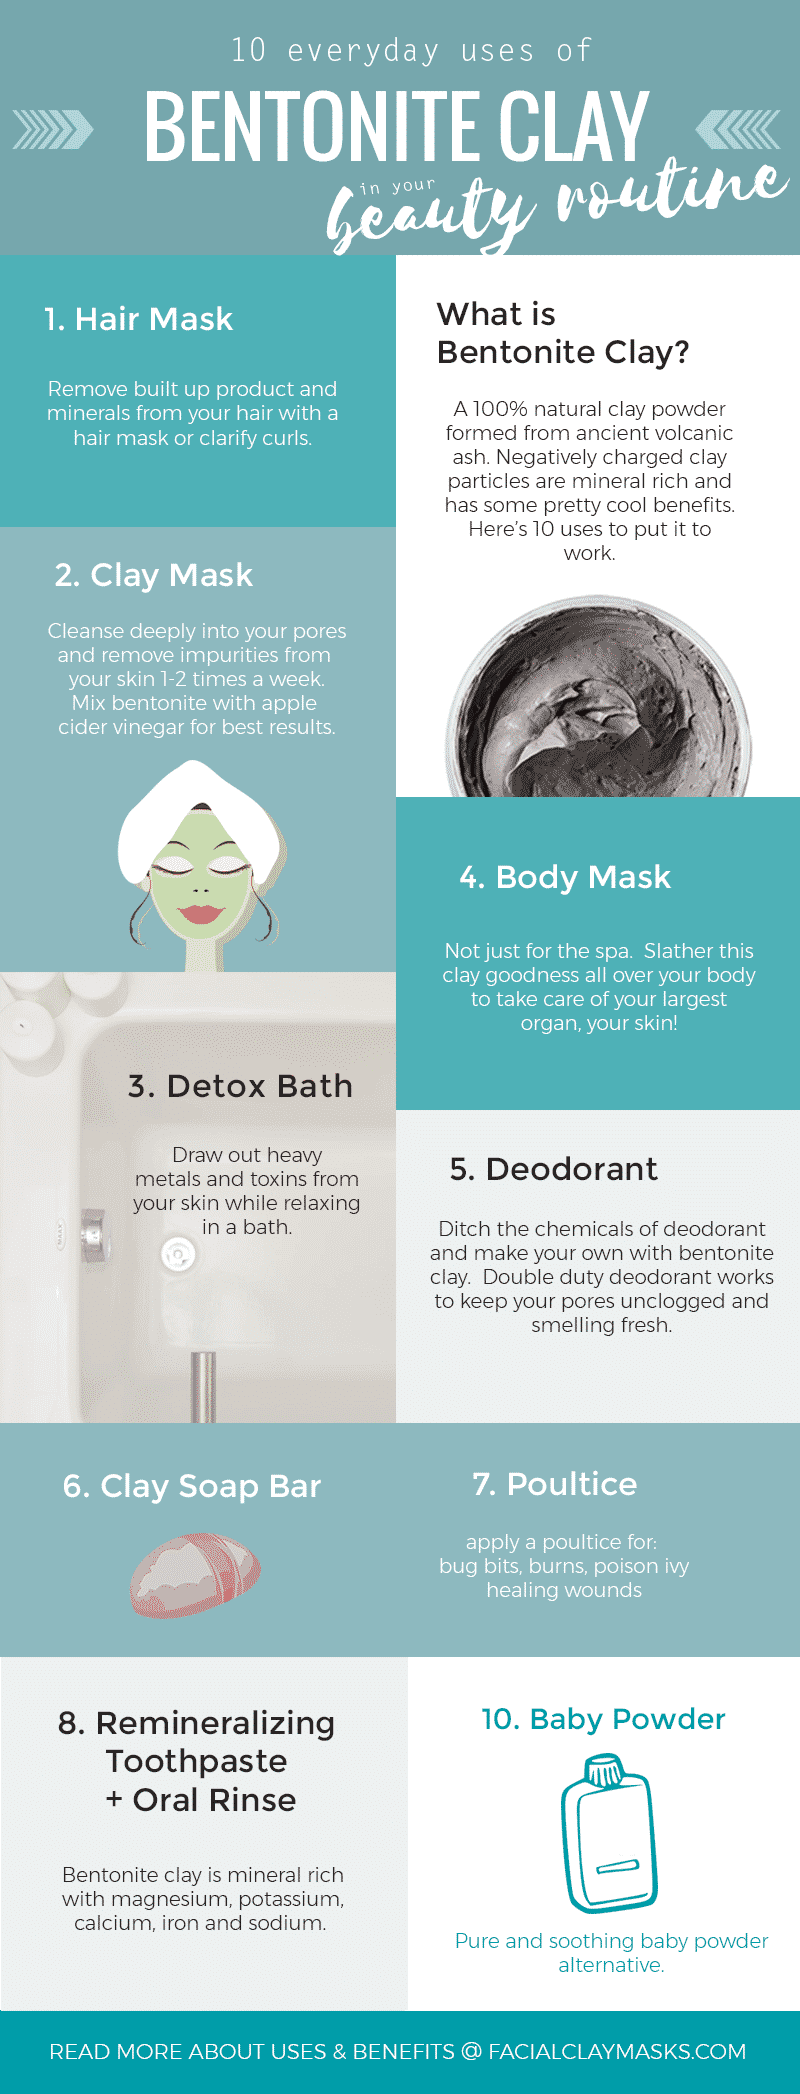 Definitive Guide to Bentonite Clay + 10 Everyday Uses and Benefits 11